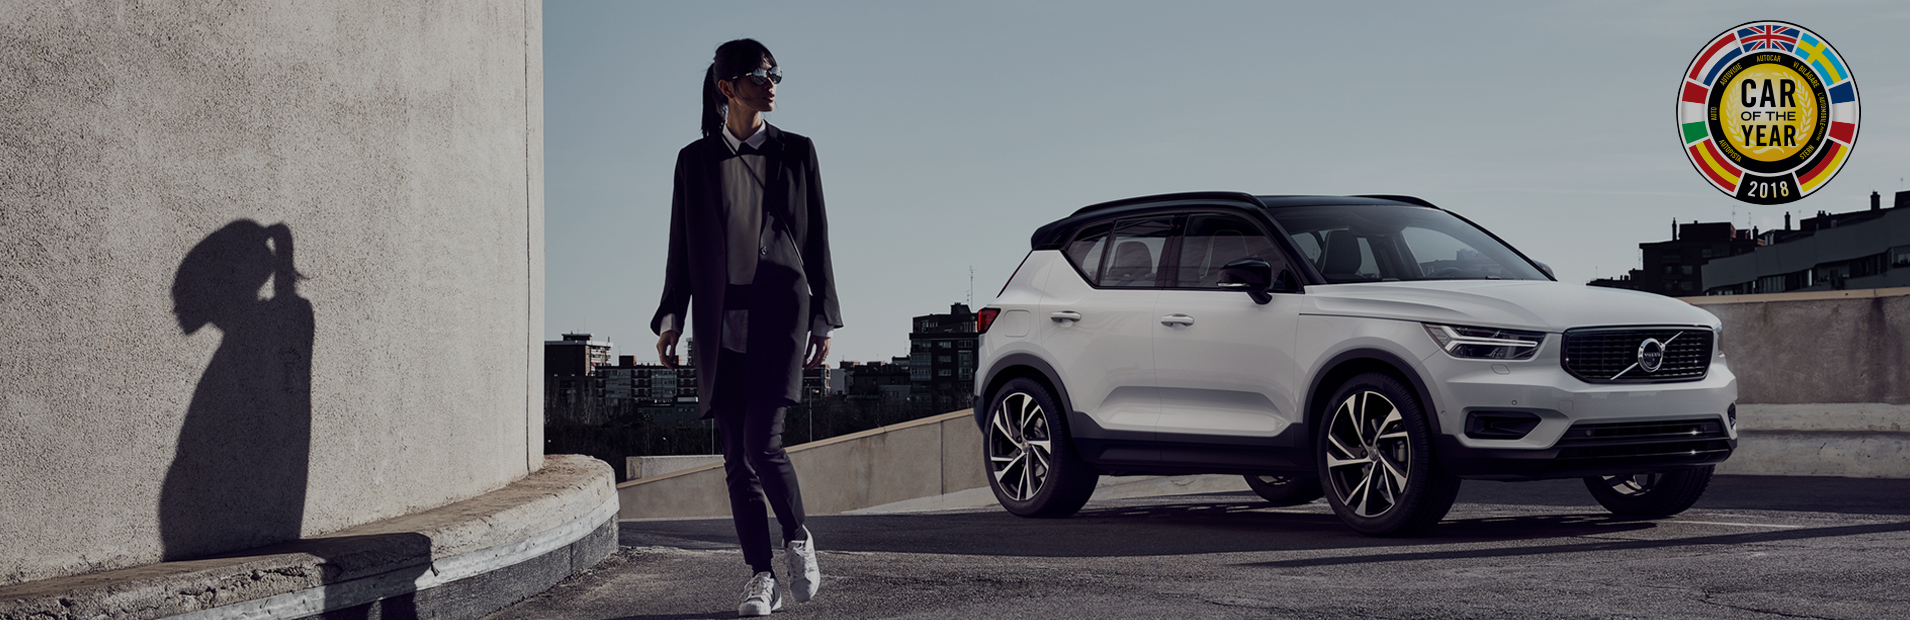 xc40-volvo-header.png